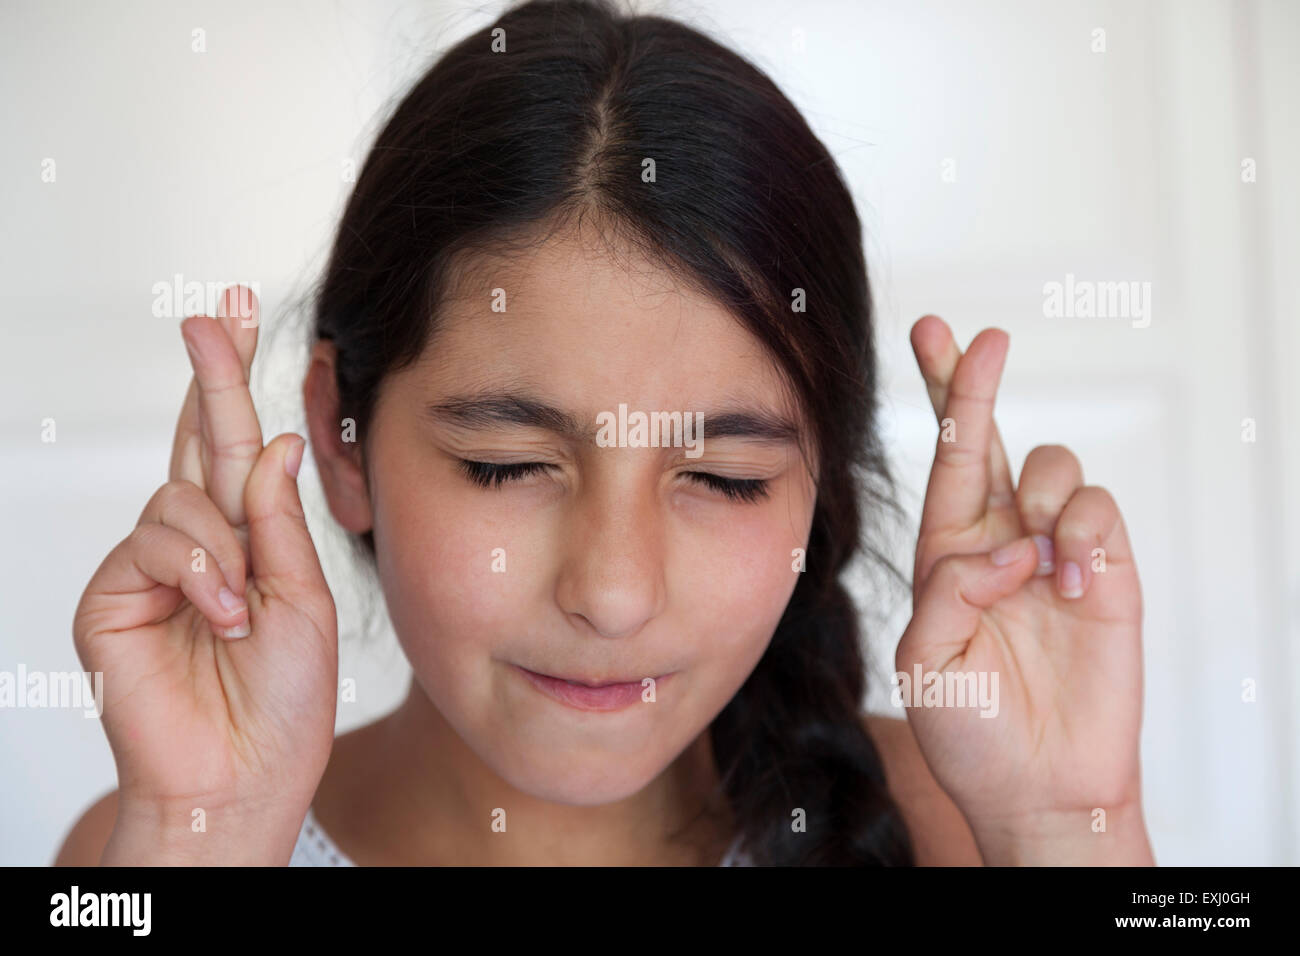 Teenage girl crossing her fingers with eyes closed - Stock Image